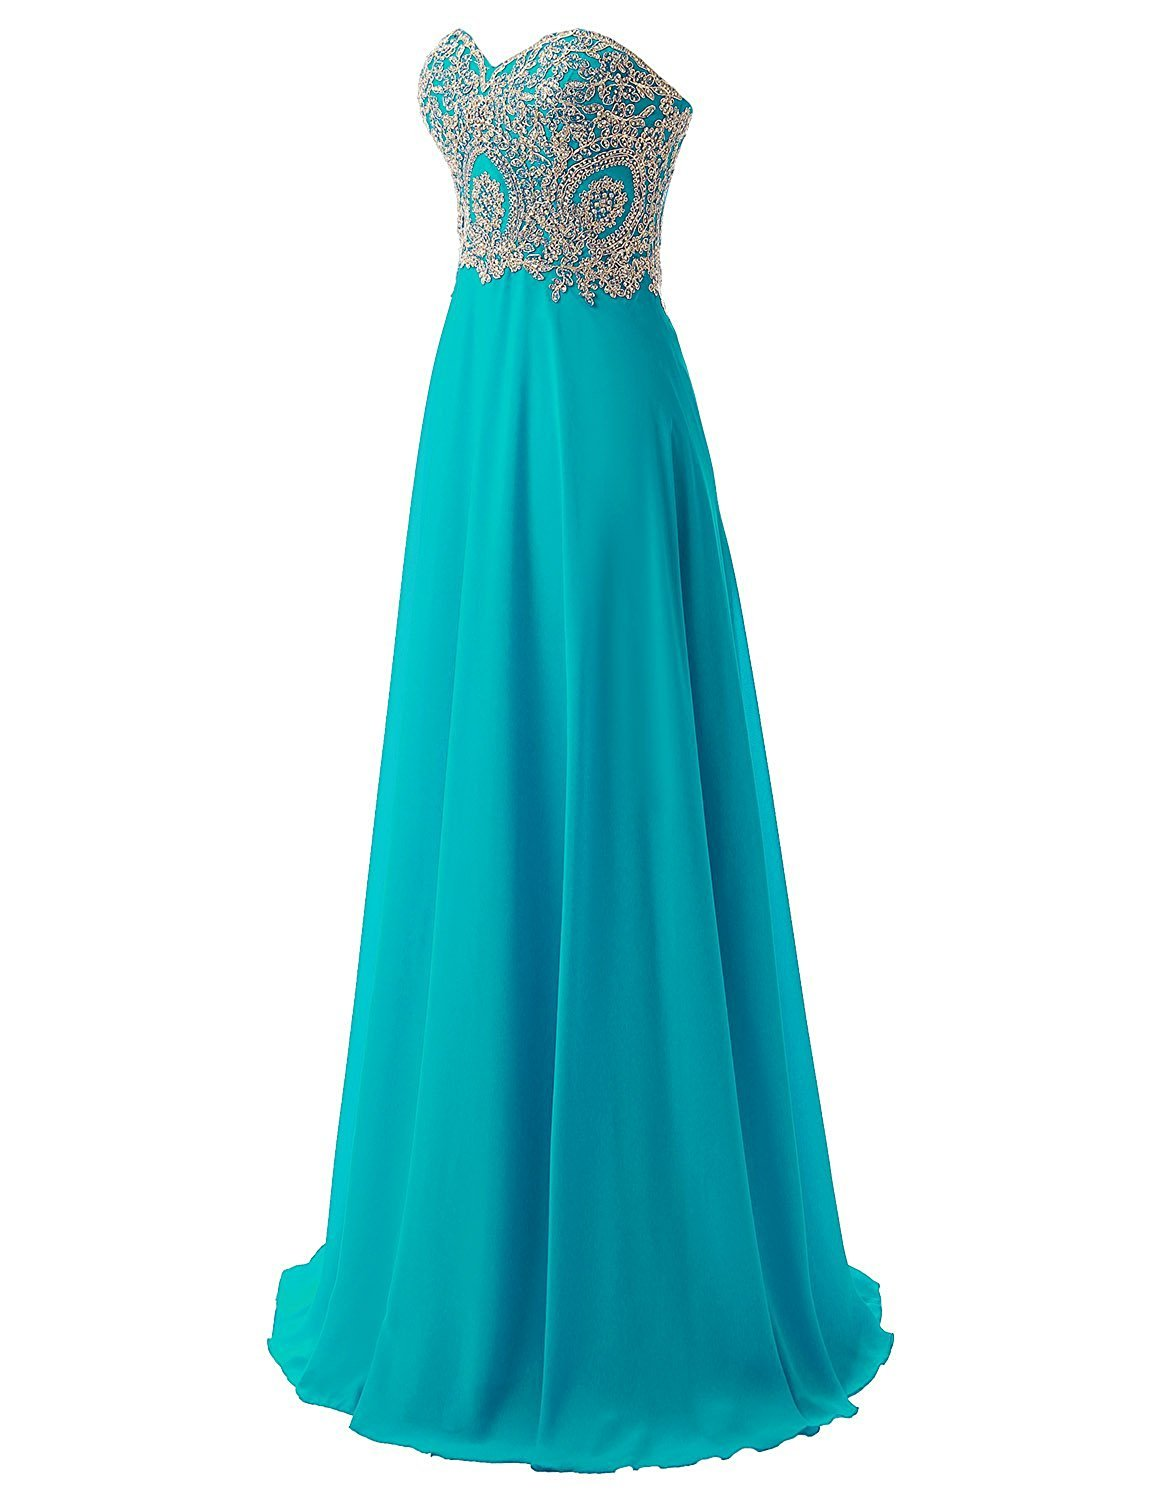 Junior Gold Lace Applique Chiffon Long Prom Gown Homecoming Bridesmaid  Dress Plus Size Turquoise US16W